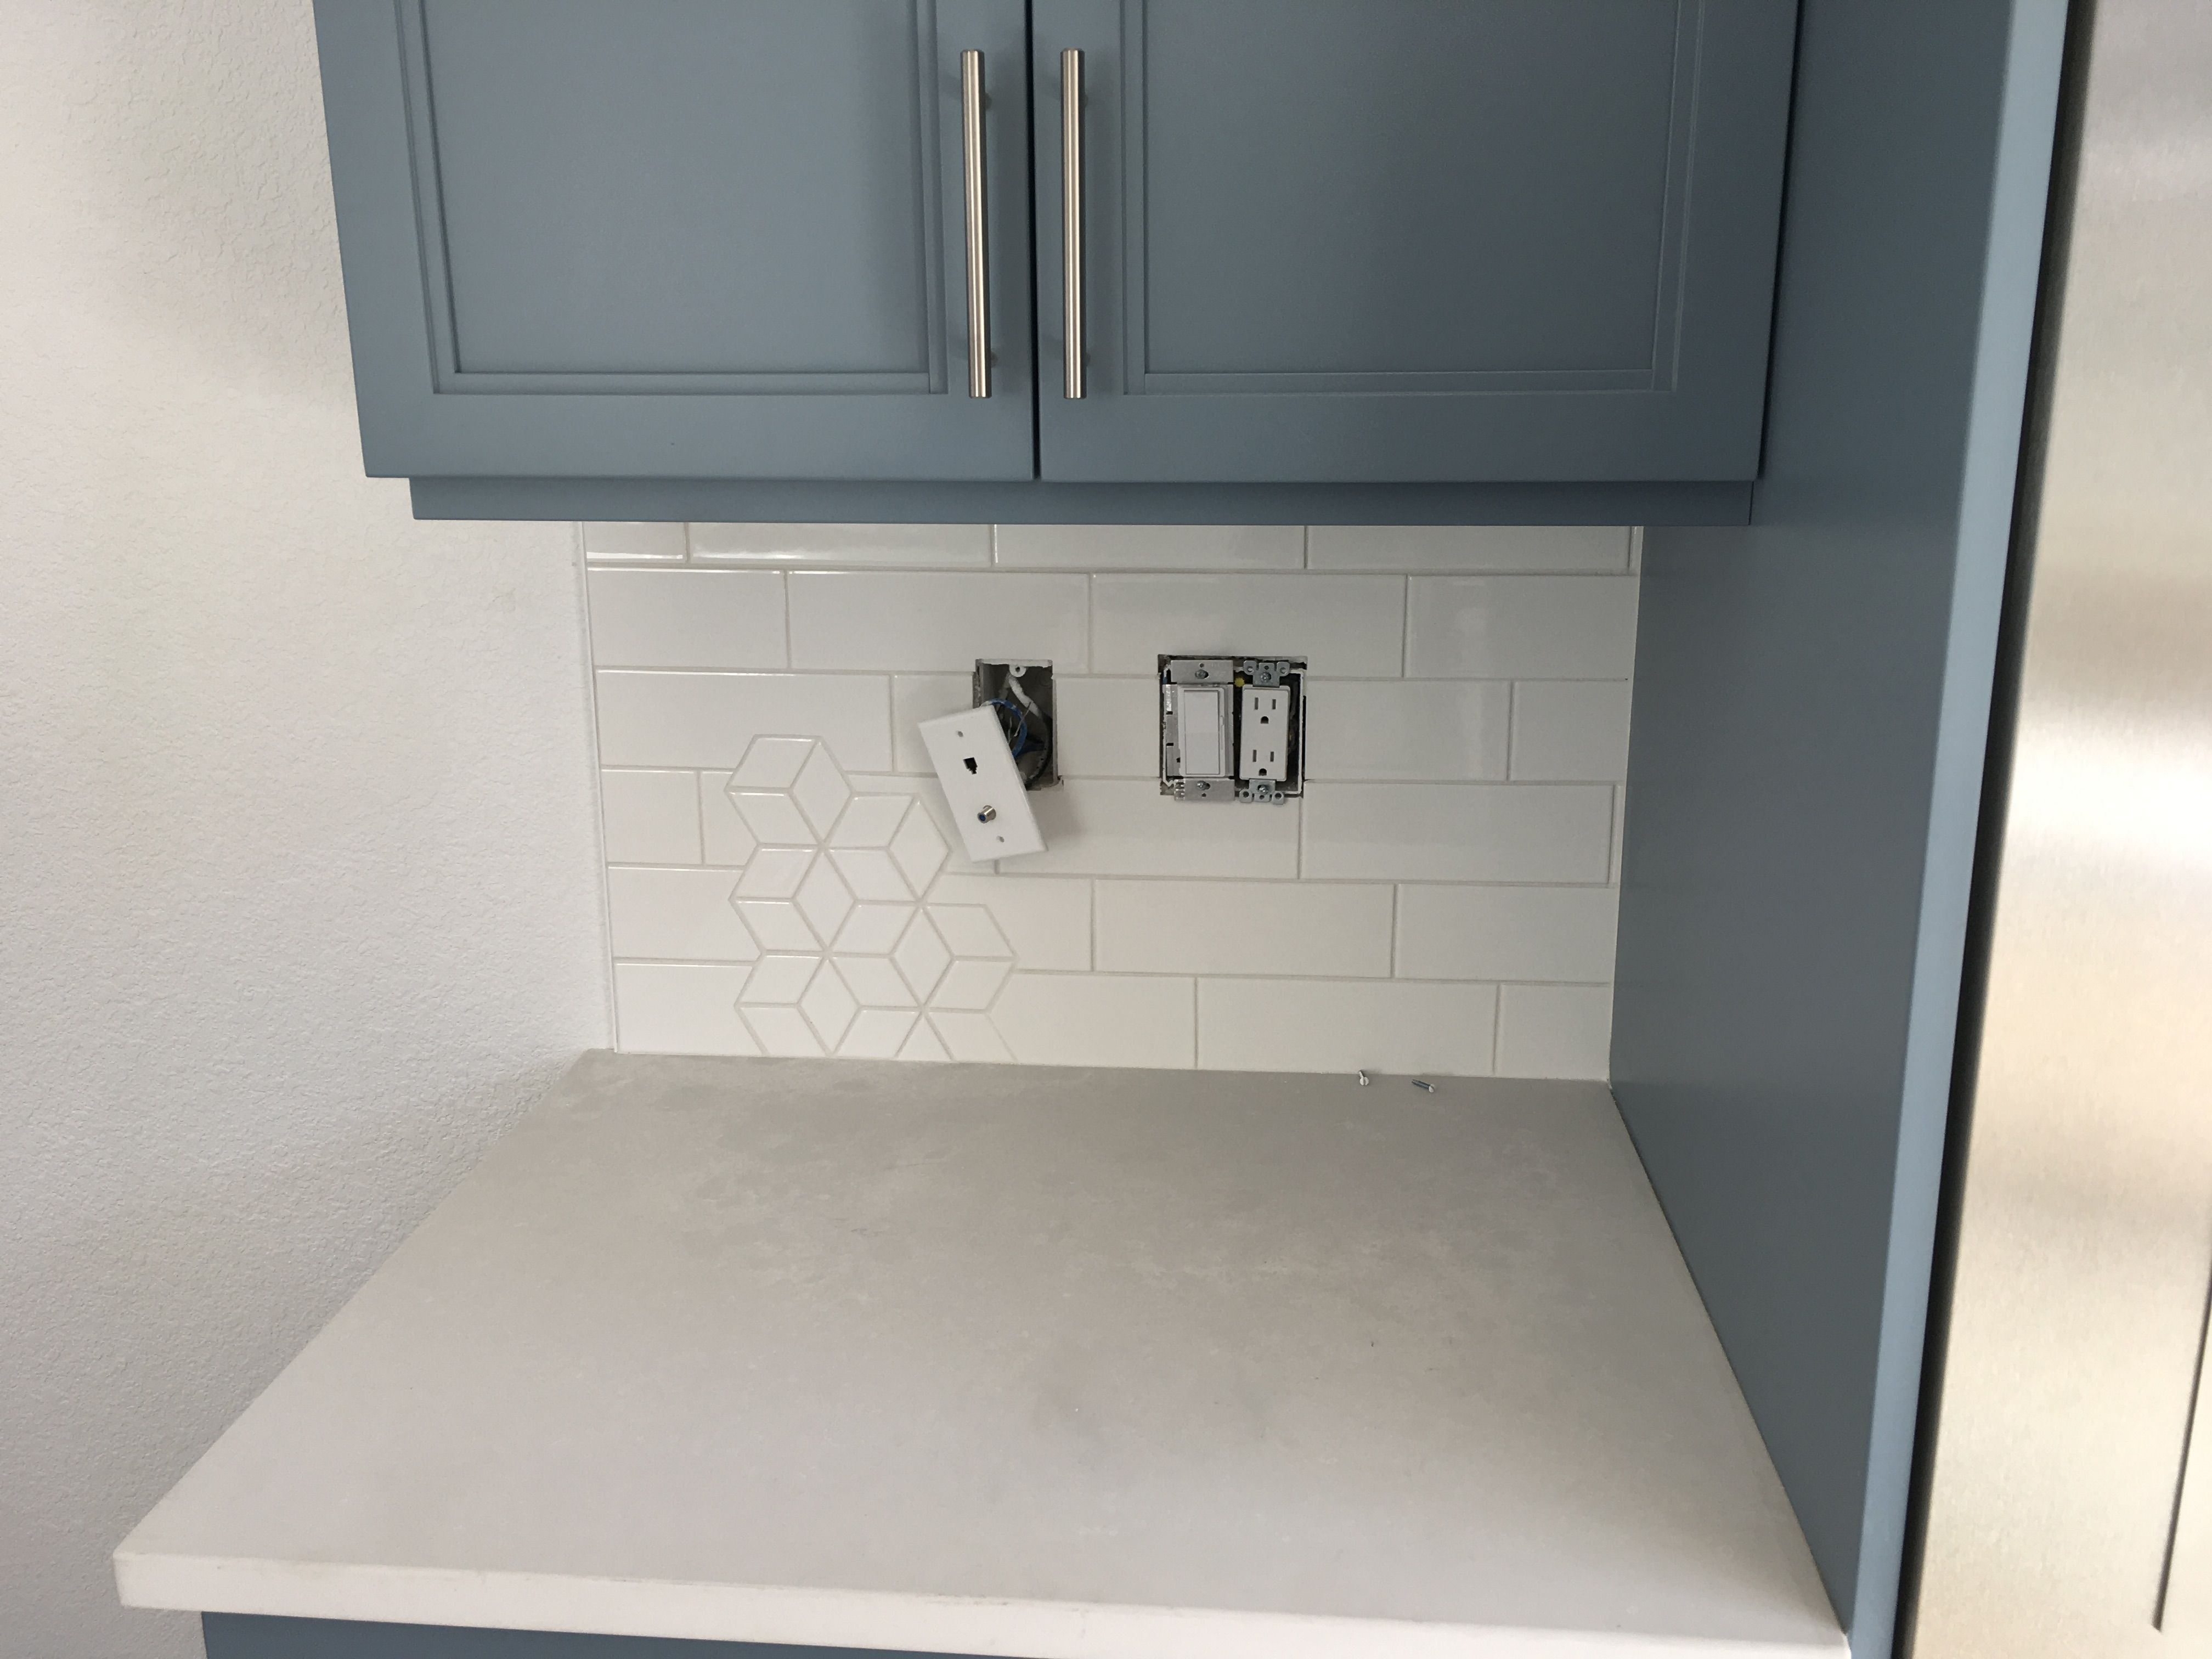 Kitchen Backsplash With A Combination Of The Diamond Pattern Mosaic And 3x9 Subway Tile From